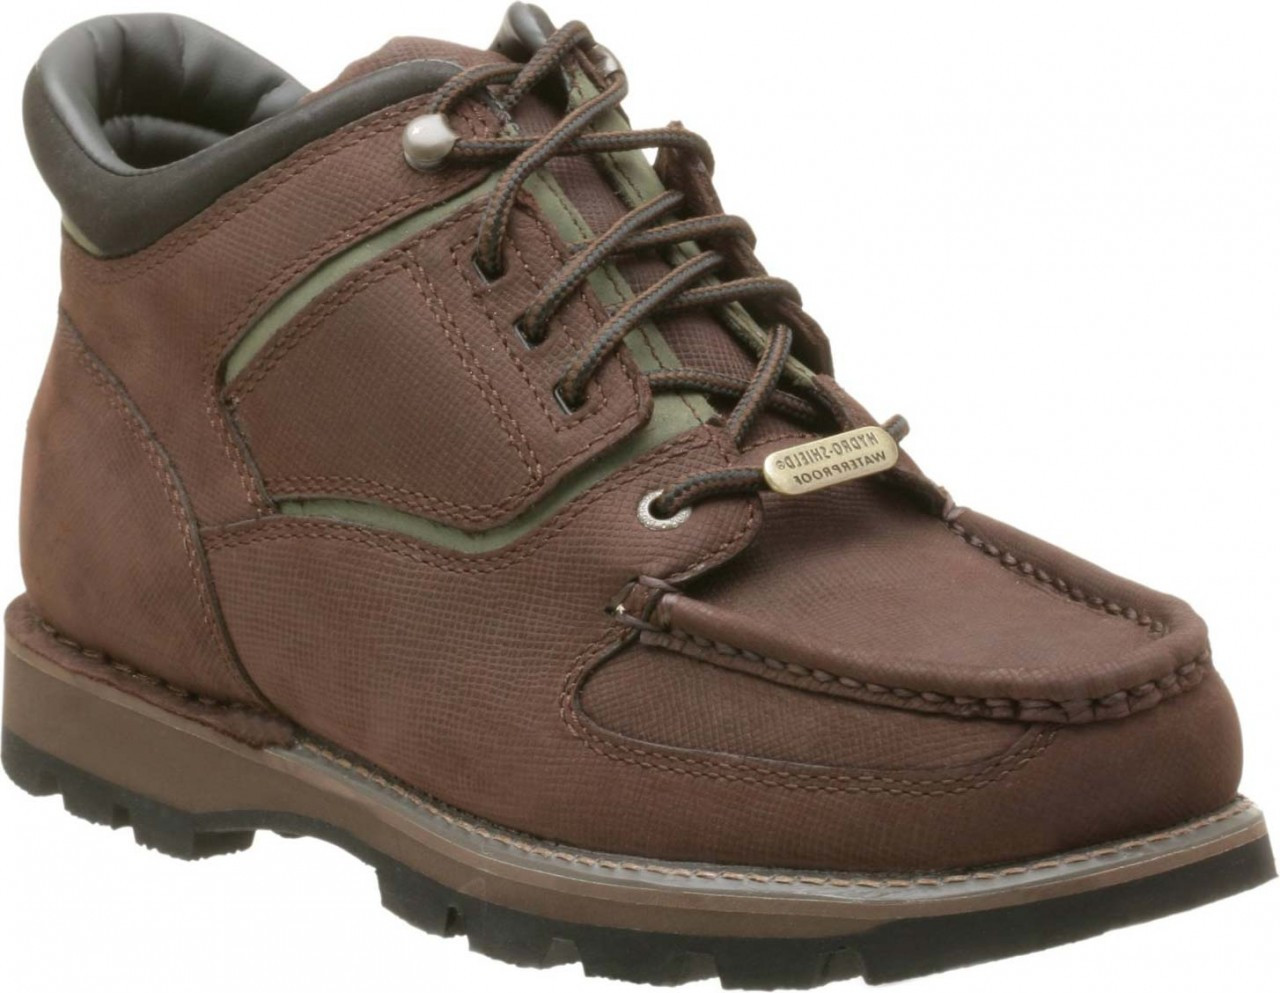 Rockport Hiking Boots